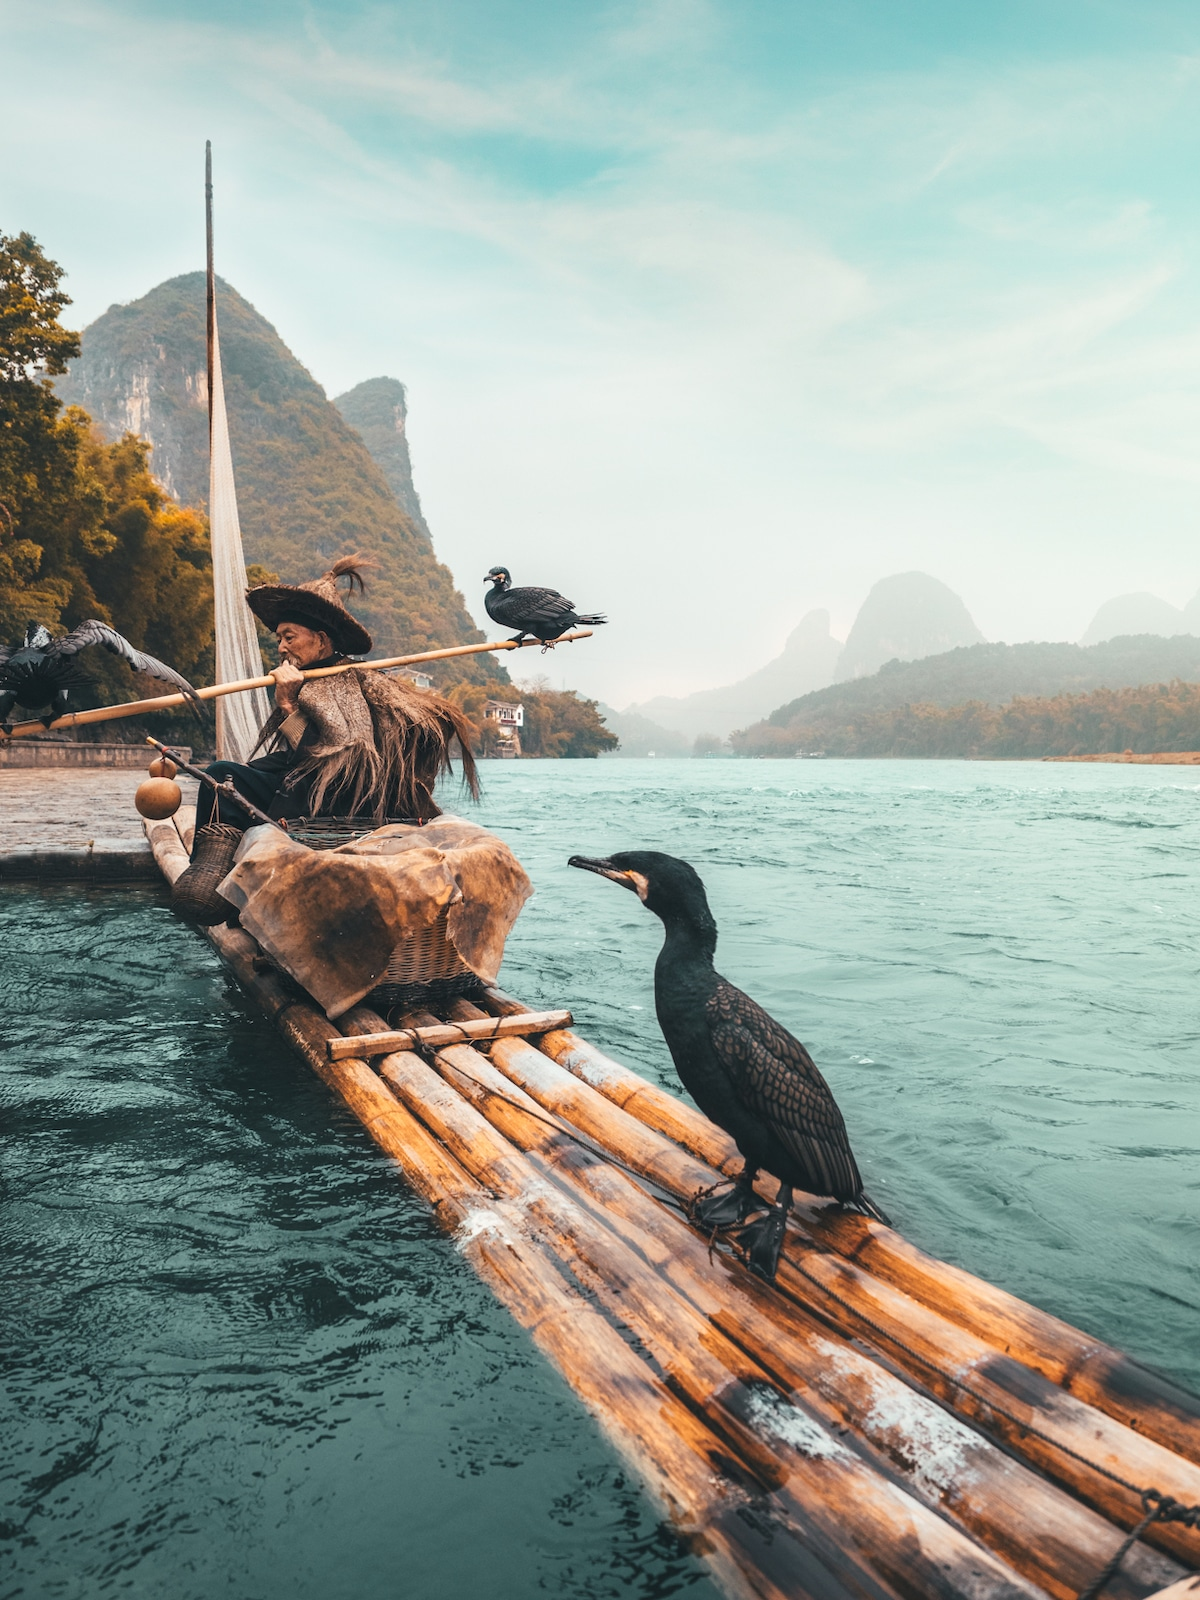 Fishing with birds in China